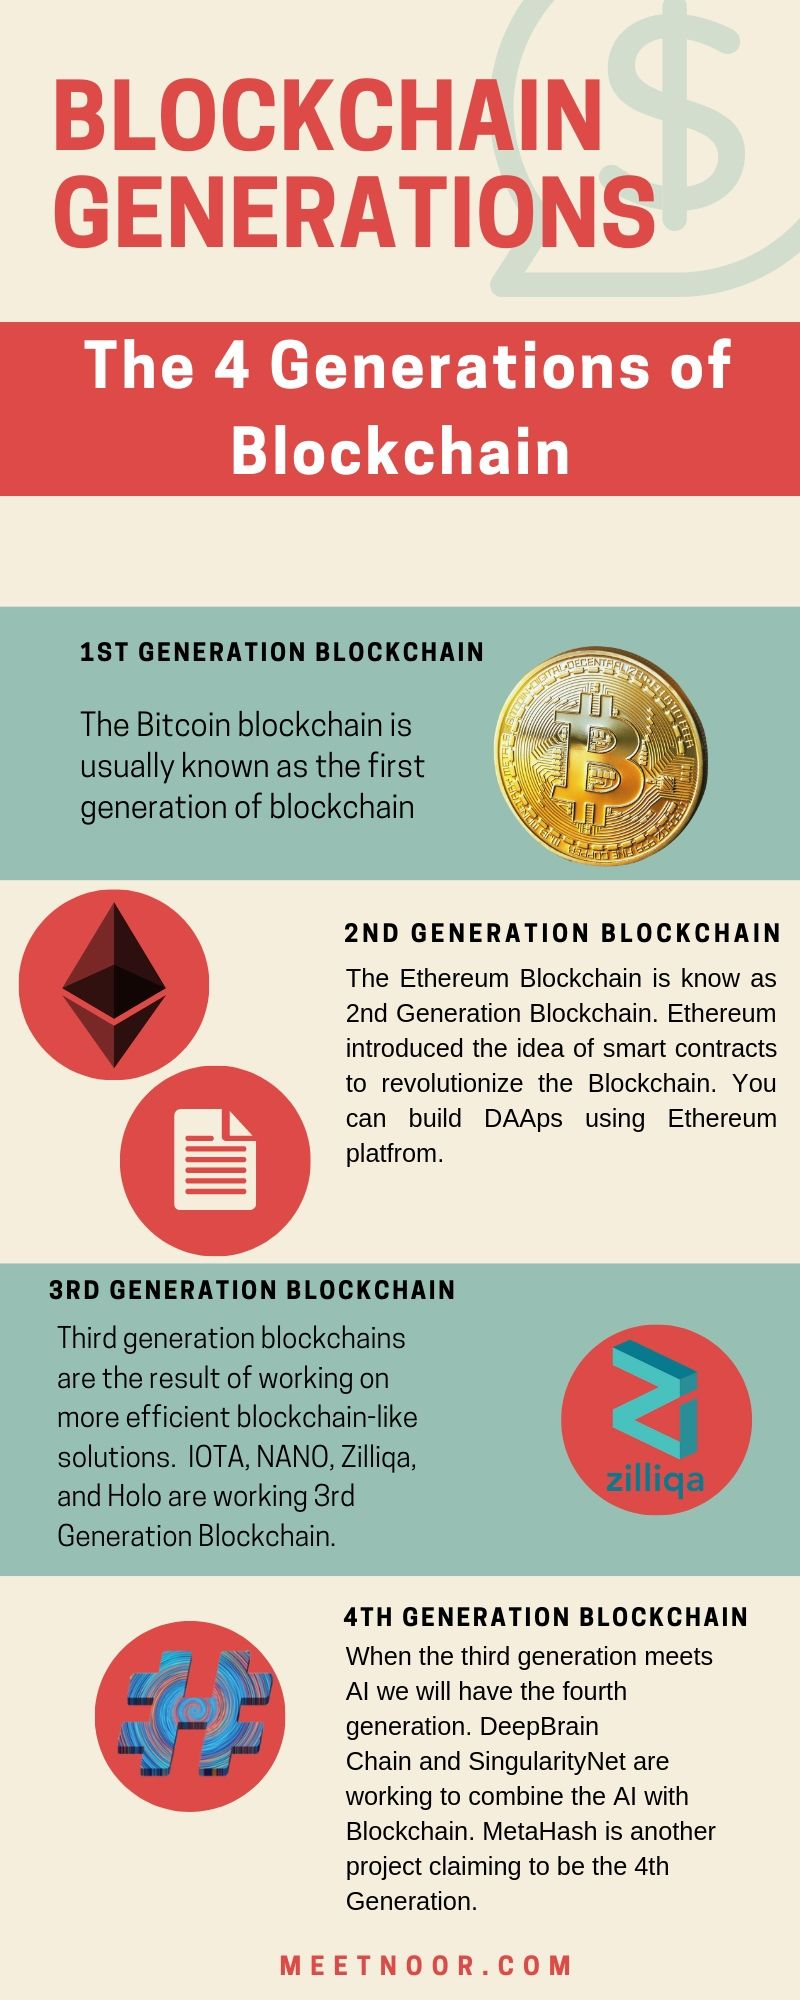 Blockchain Generations 2019